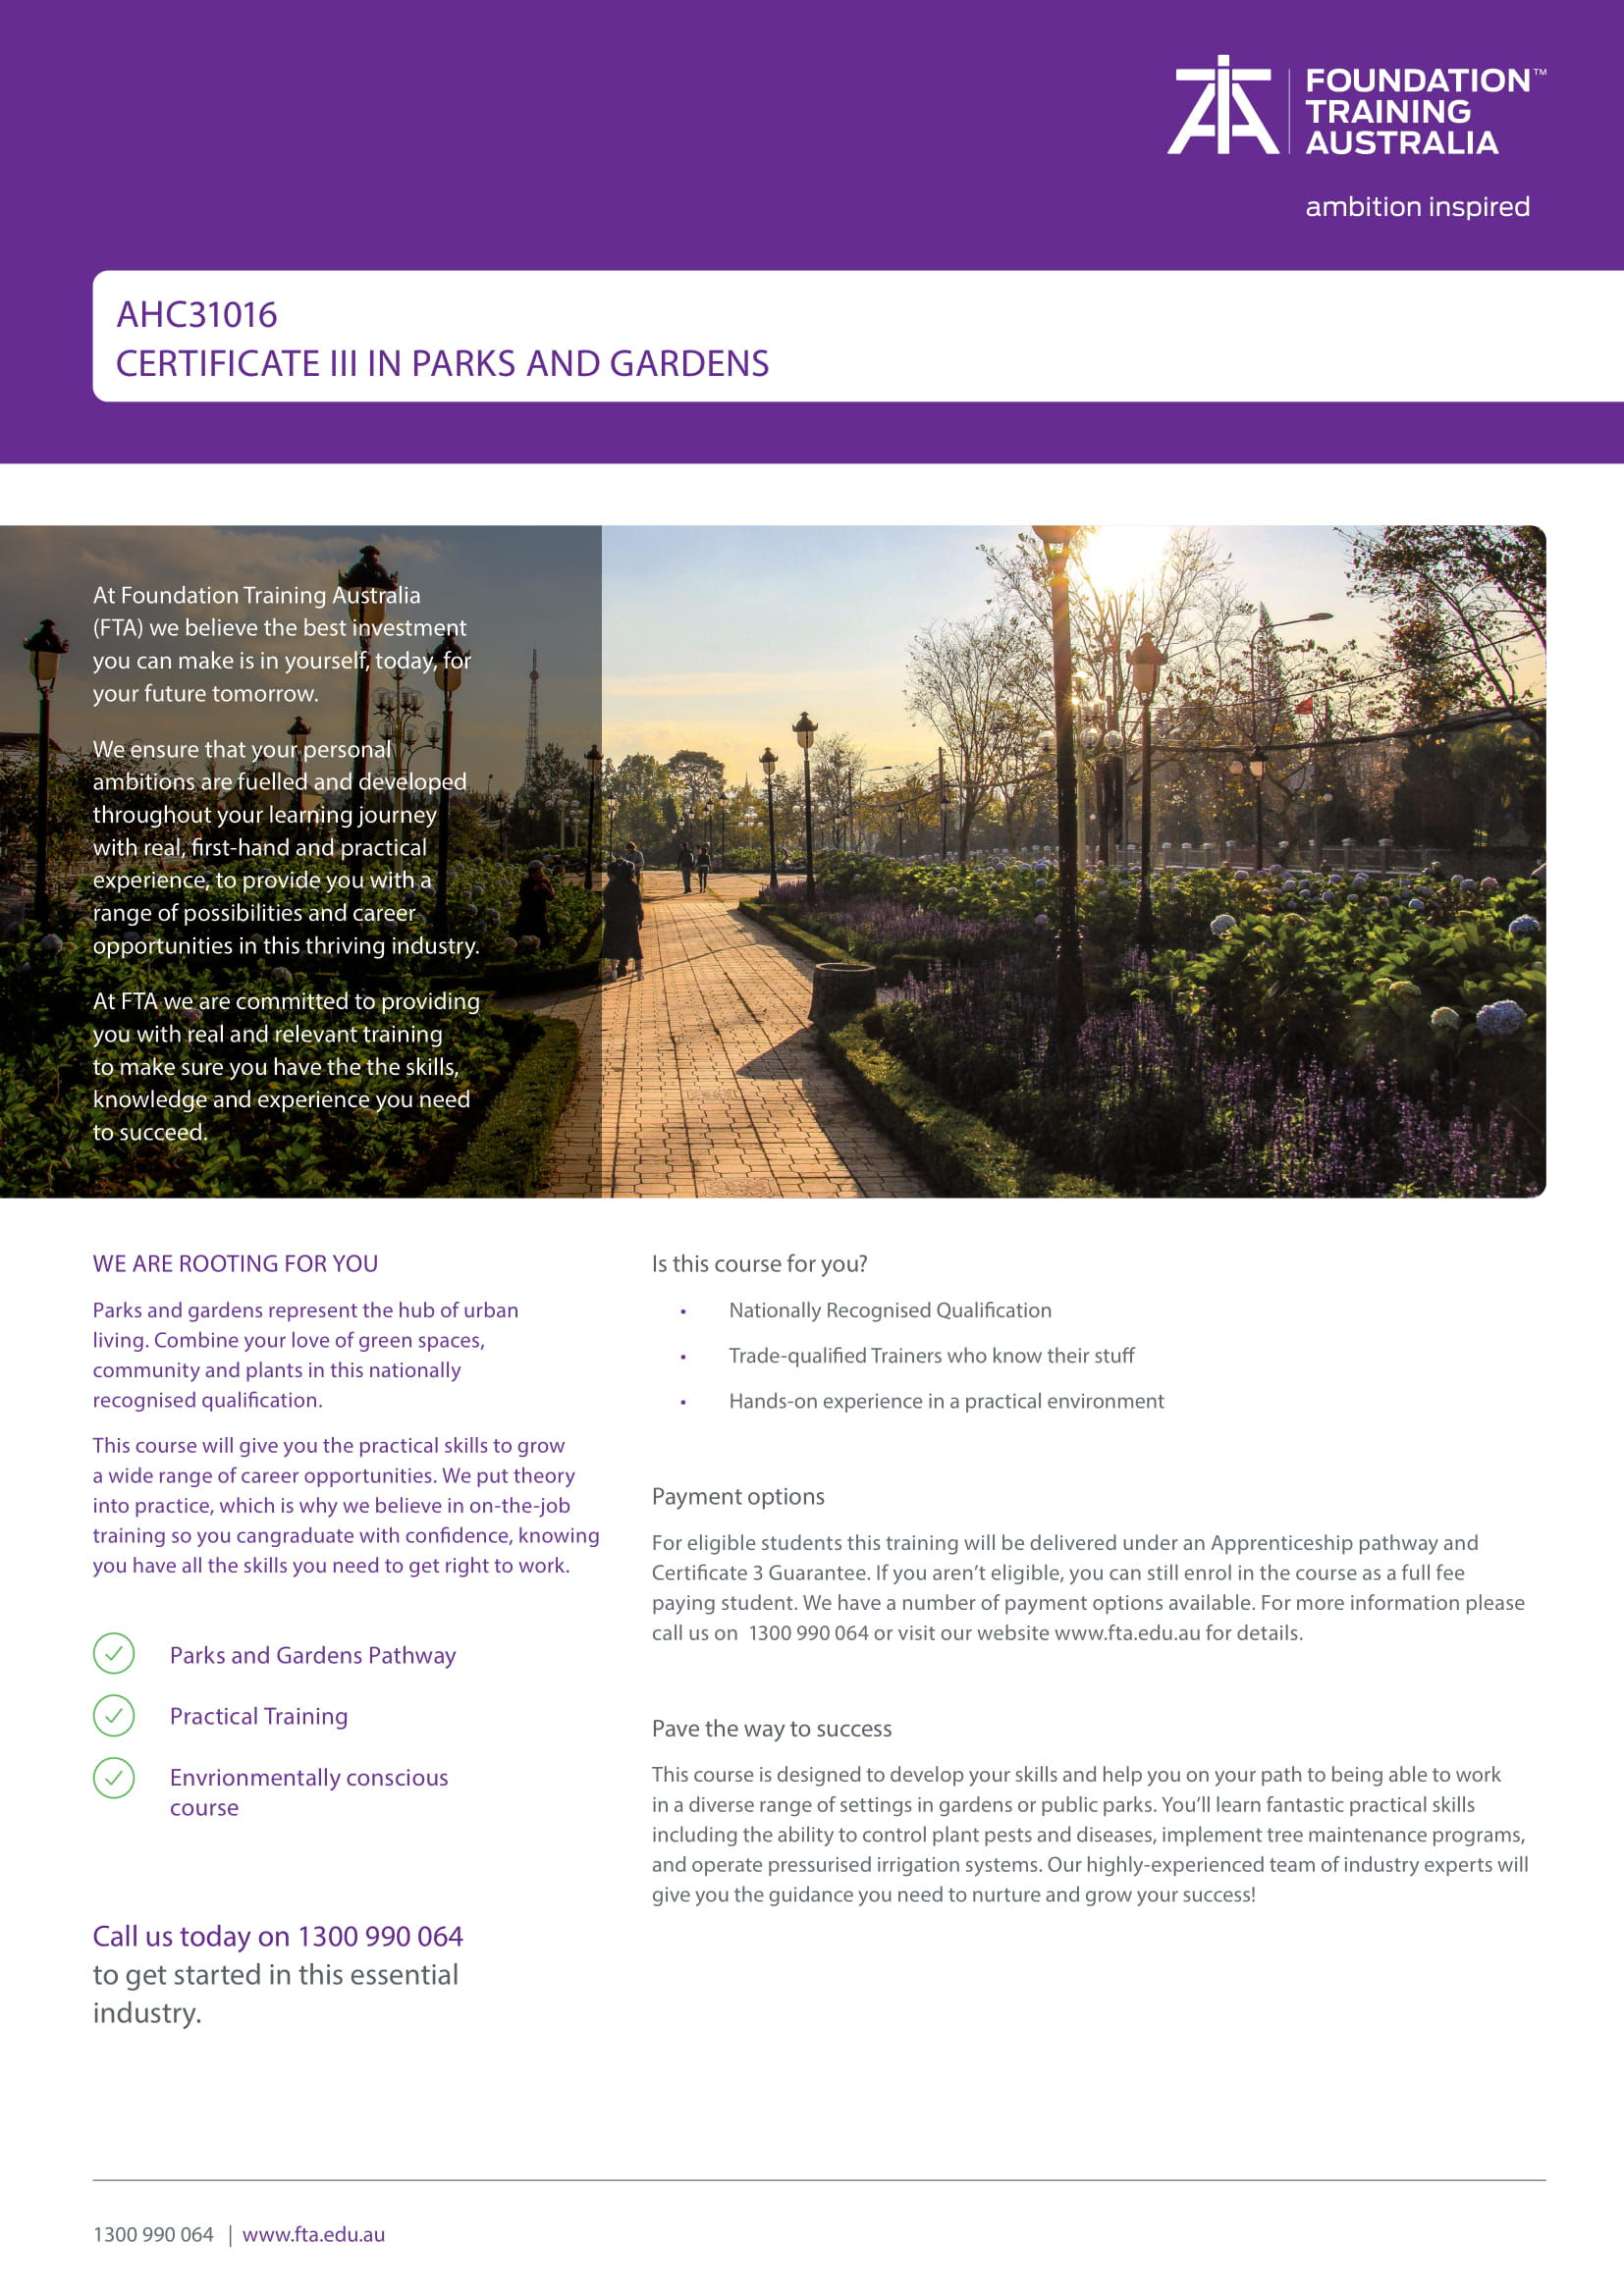 https://www.fta.edu.au/wp-content/uploads/2020/06/TP1.MK_.169-Certificate-III-in-Parks-and-Gardens-Course-Flyer-AHC31016-1.jpg